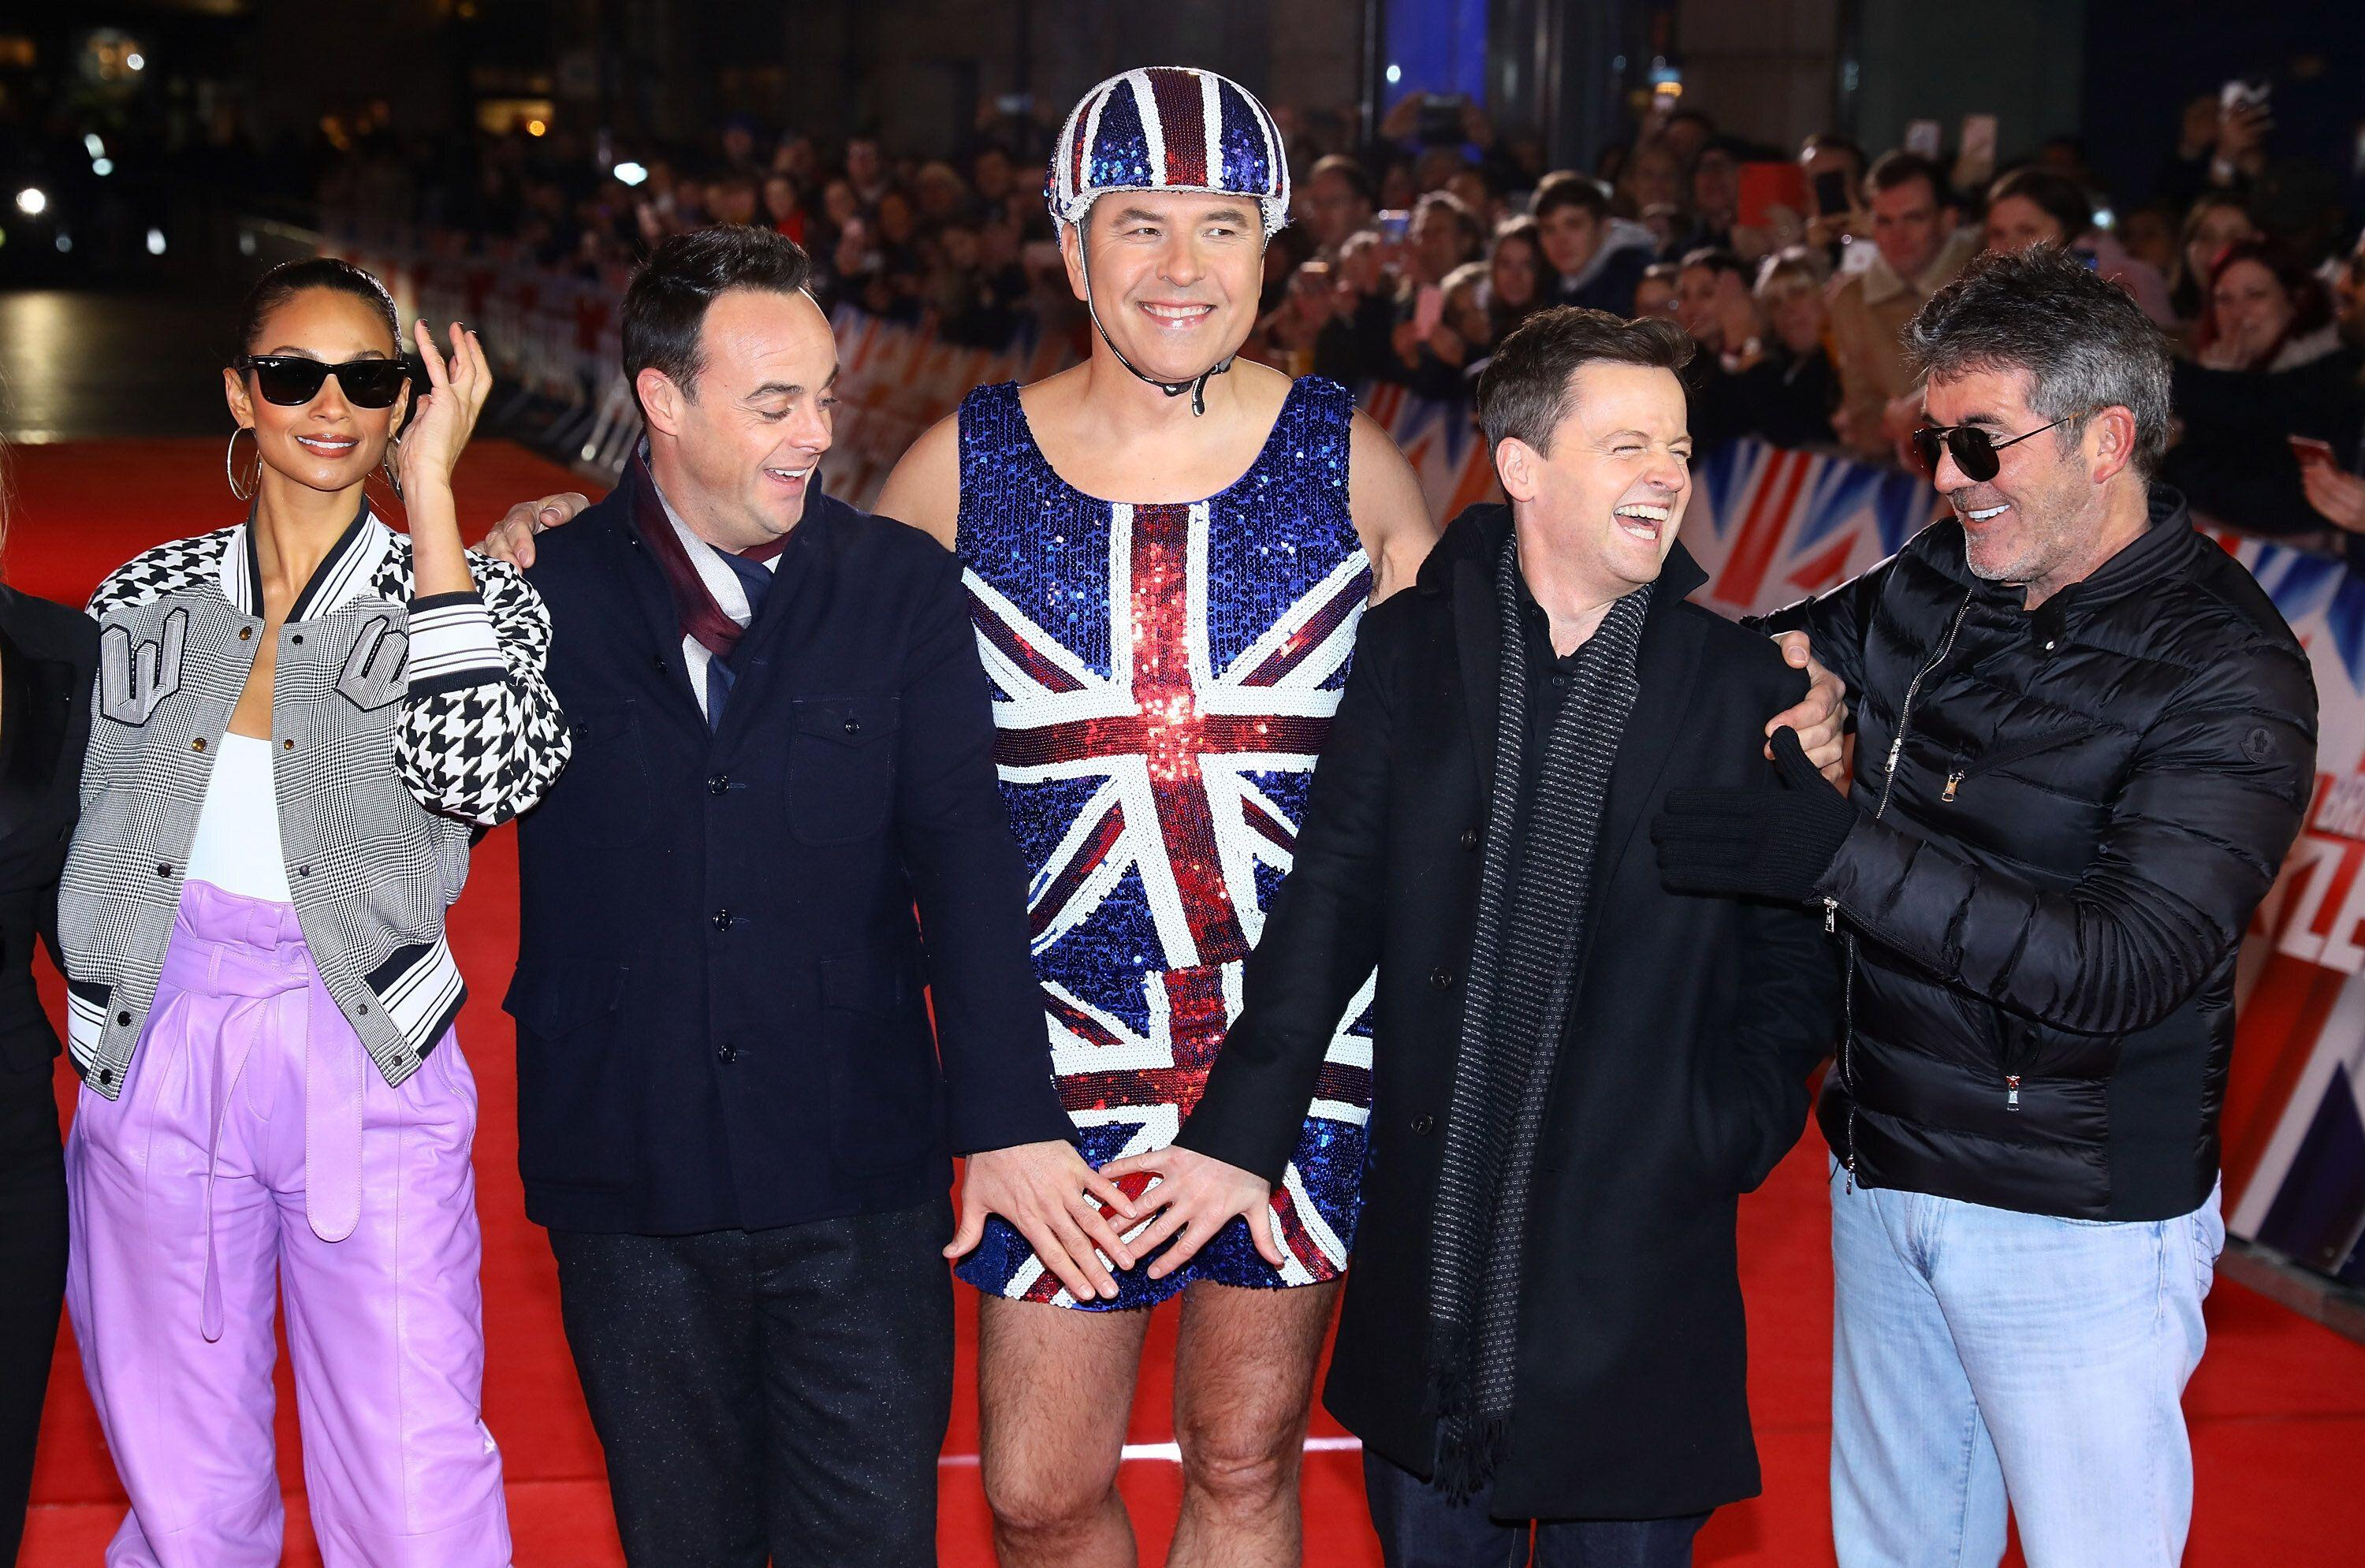 LONDON, ENGLAND - JANUARY 20: Alesha Dixon, Ant McPartlin, David Walliams, Declan Donnelly and Simon Cowell arrive at the Britain's Got Talent 2019 auditions held at London Palladium on January 20, 2019 in London, England. (Photo by Tim P. Whitby/Tim P. Whitby/Getty Images)